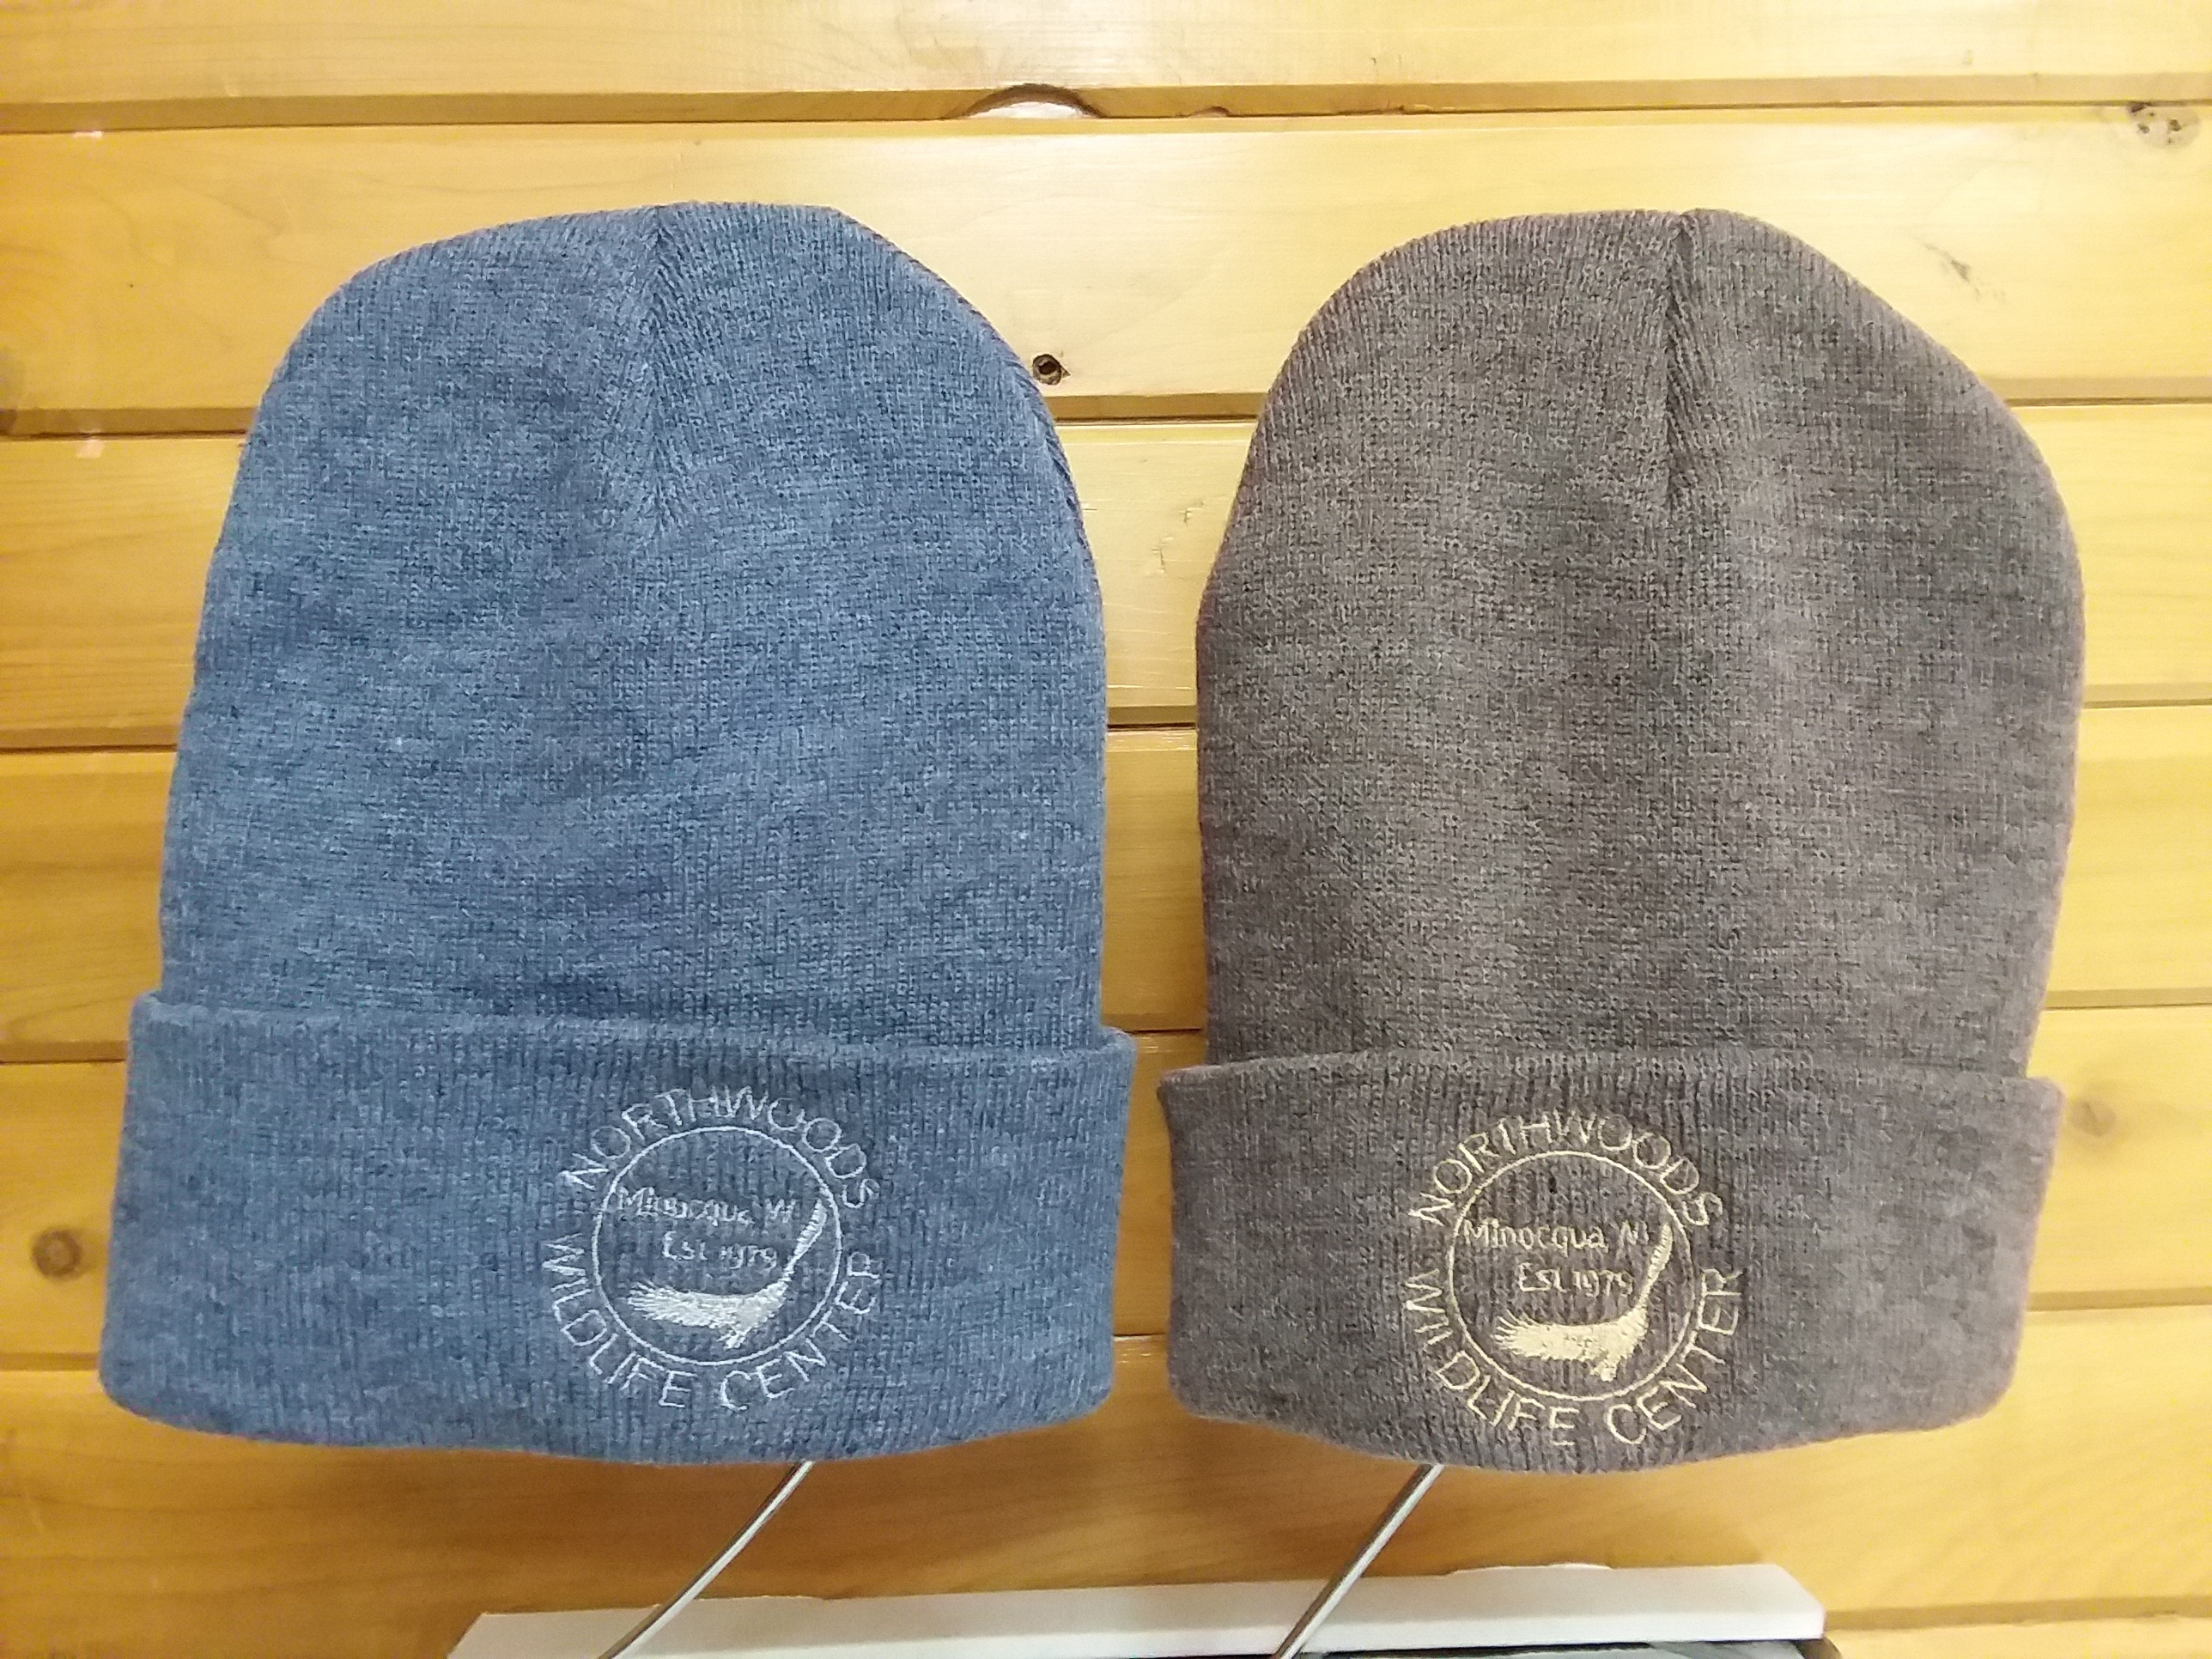 Knit Hat Heather Brown $17 + $4 shipping